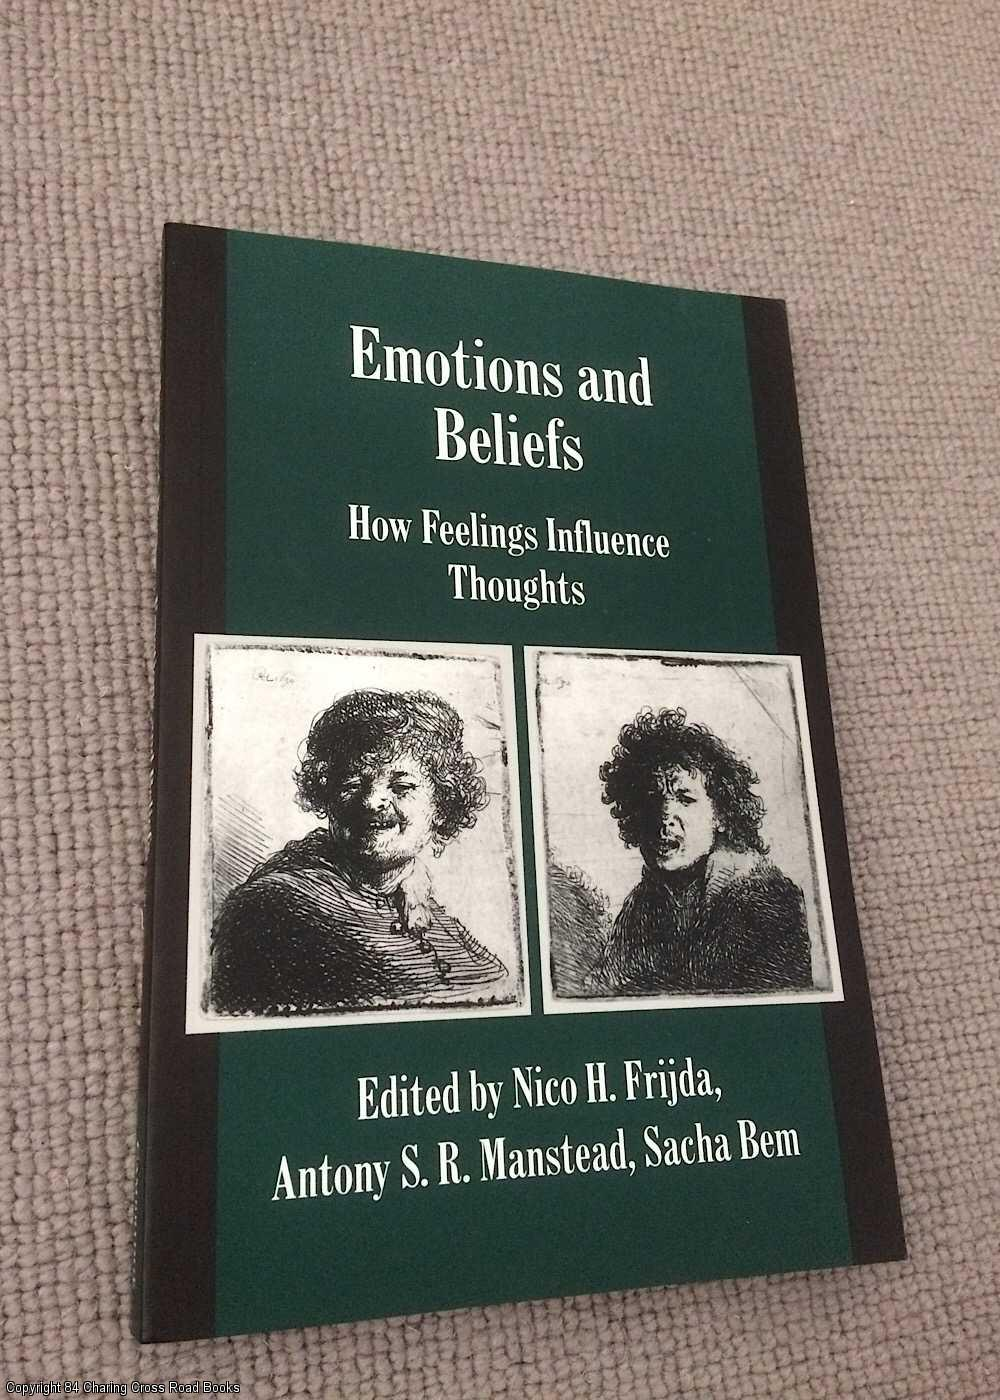 FRIJDA / MANSTEAD / BEM - Emotions and Beliefs: How Feelings Influence Thoughts